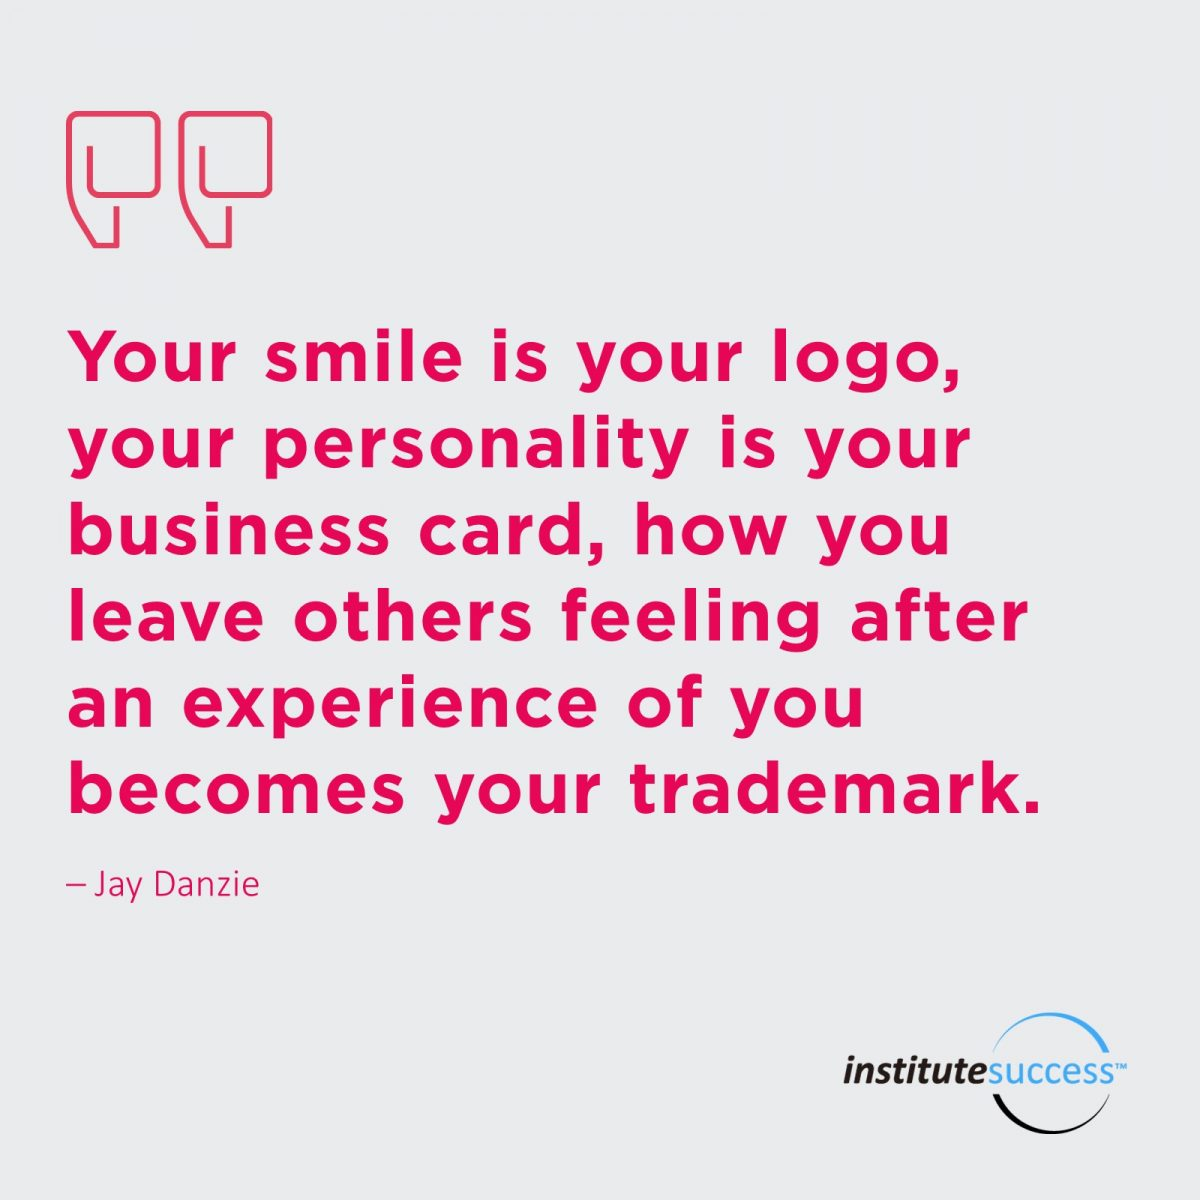 Your smile is your logo, your personality is your business card, how you leave others feeling after an experience of you becomes your trademark.	Jay Danzie